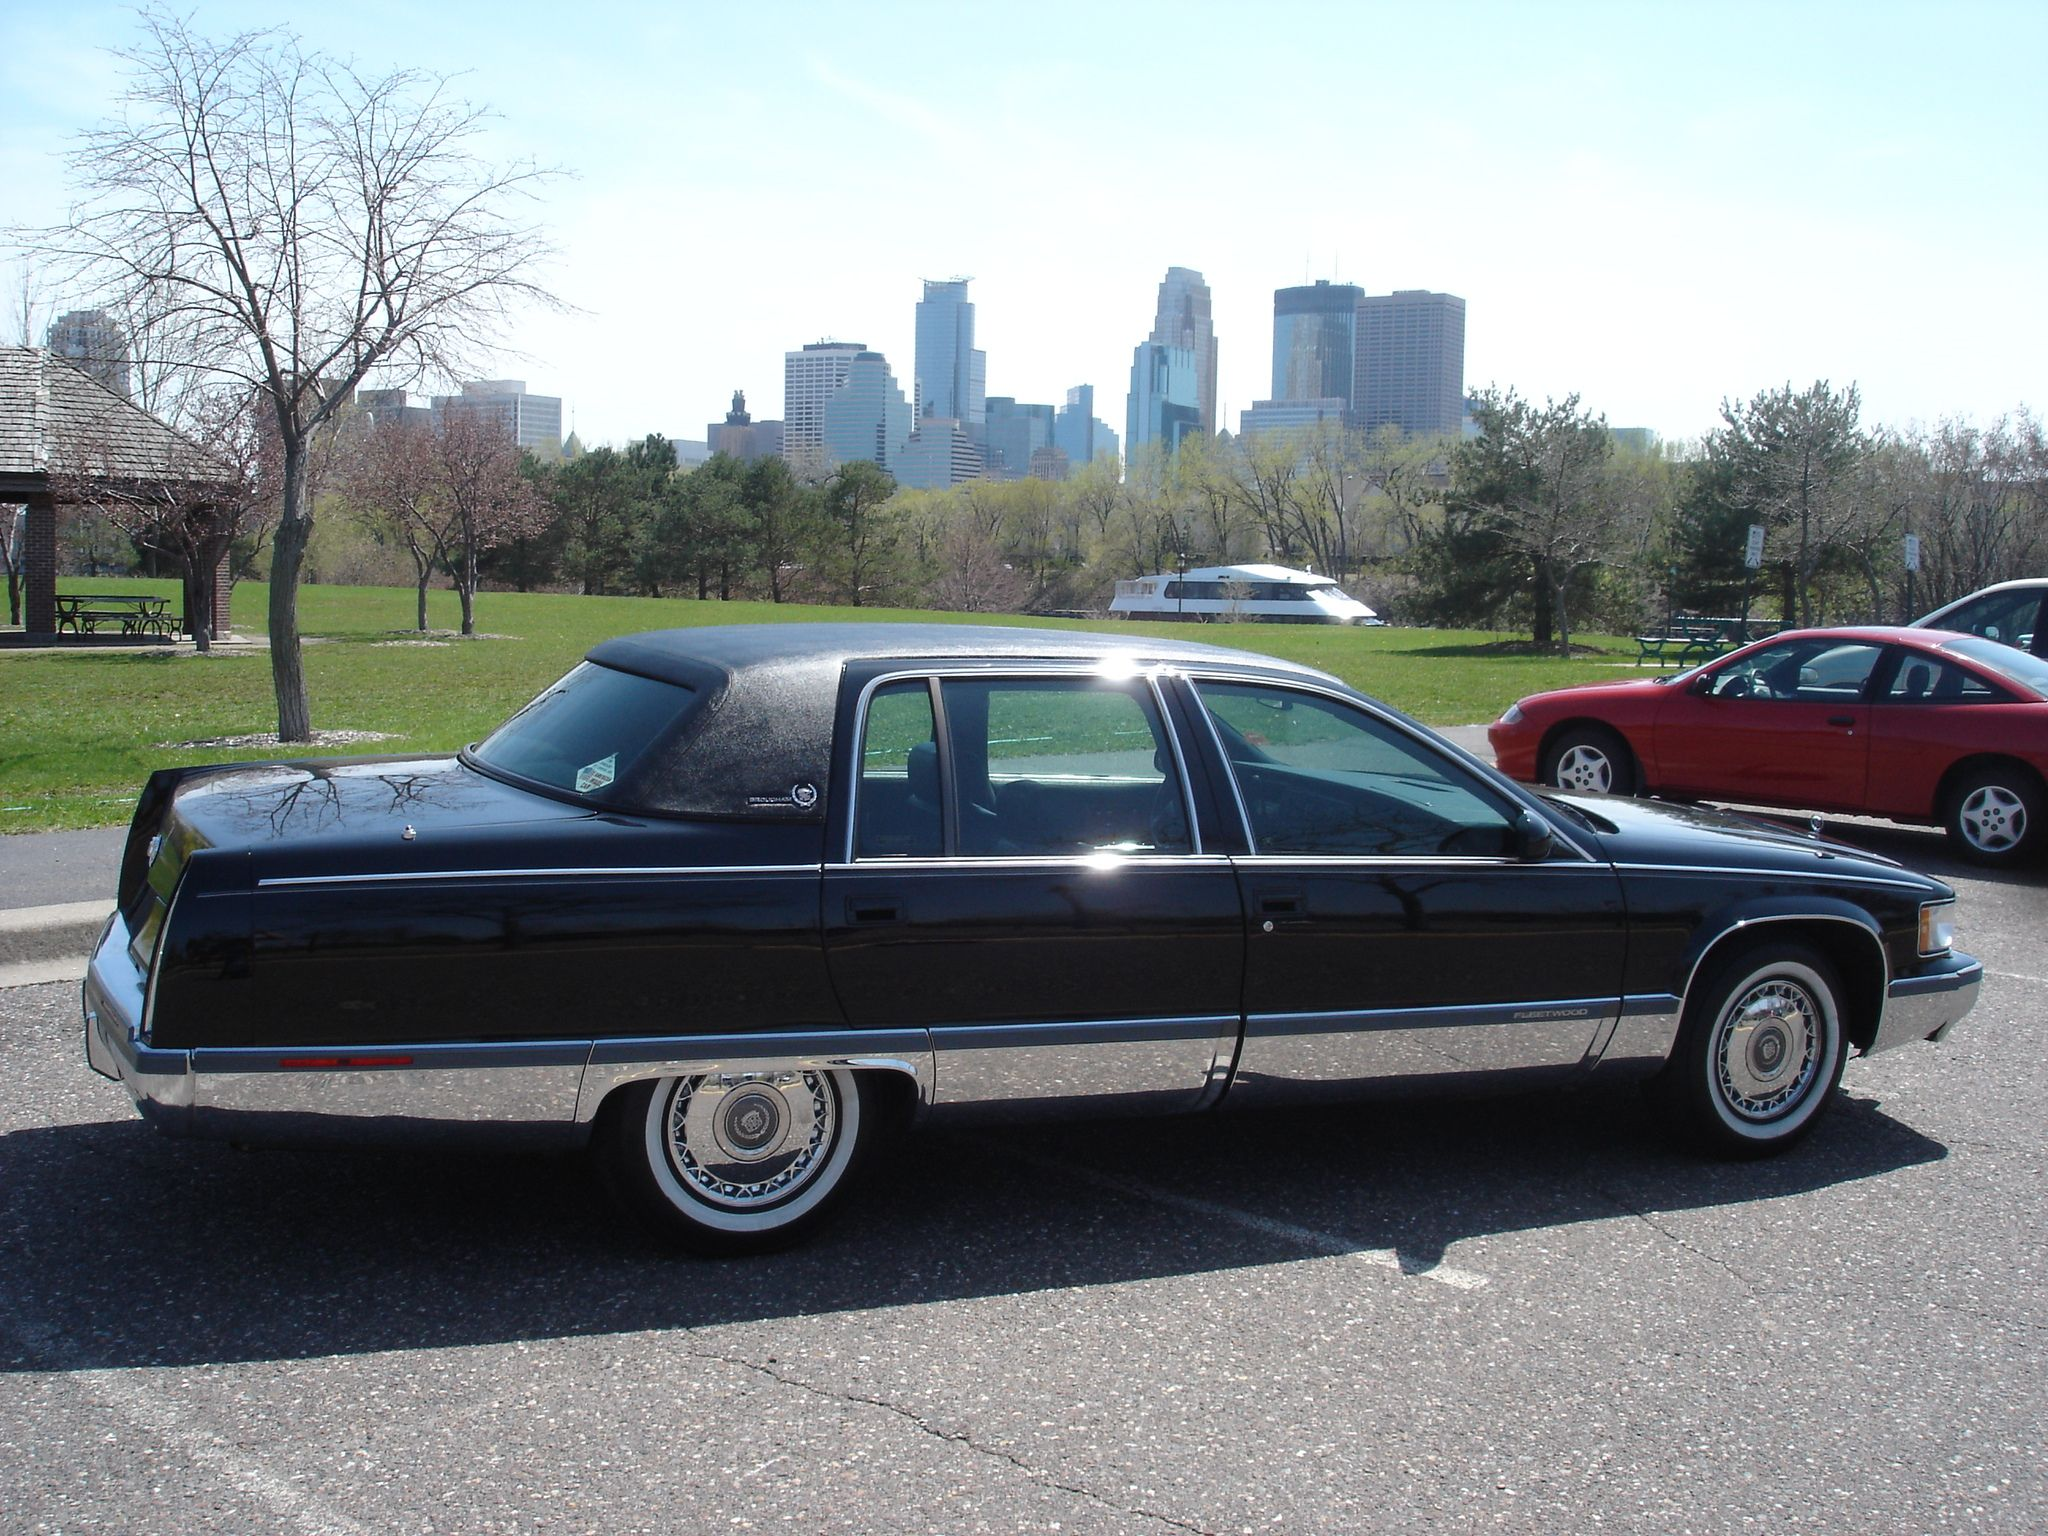 medium resolution of cadillac fleetwood brougham i used to dream about this car when i was a kid wanted it in navy blue